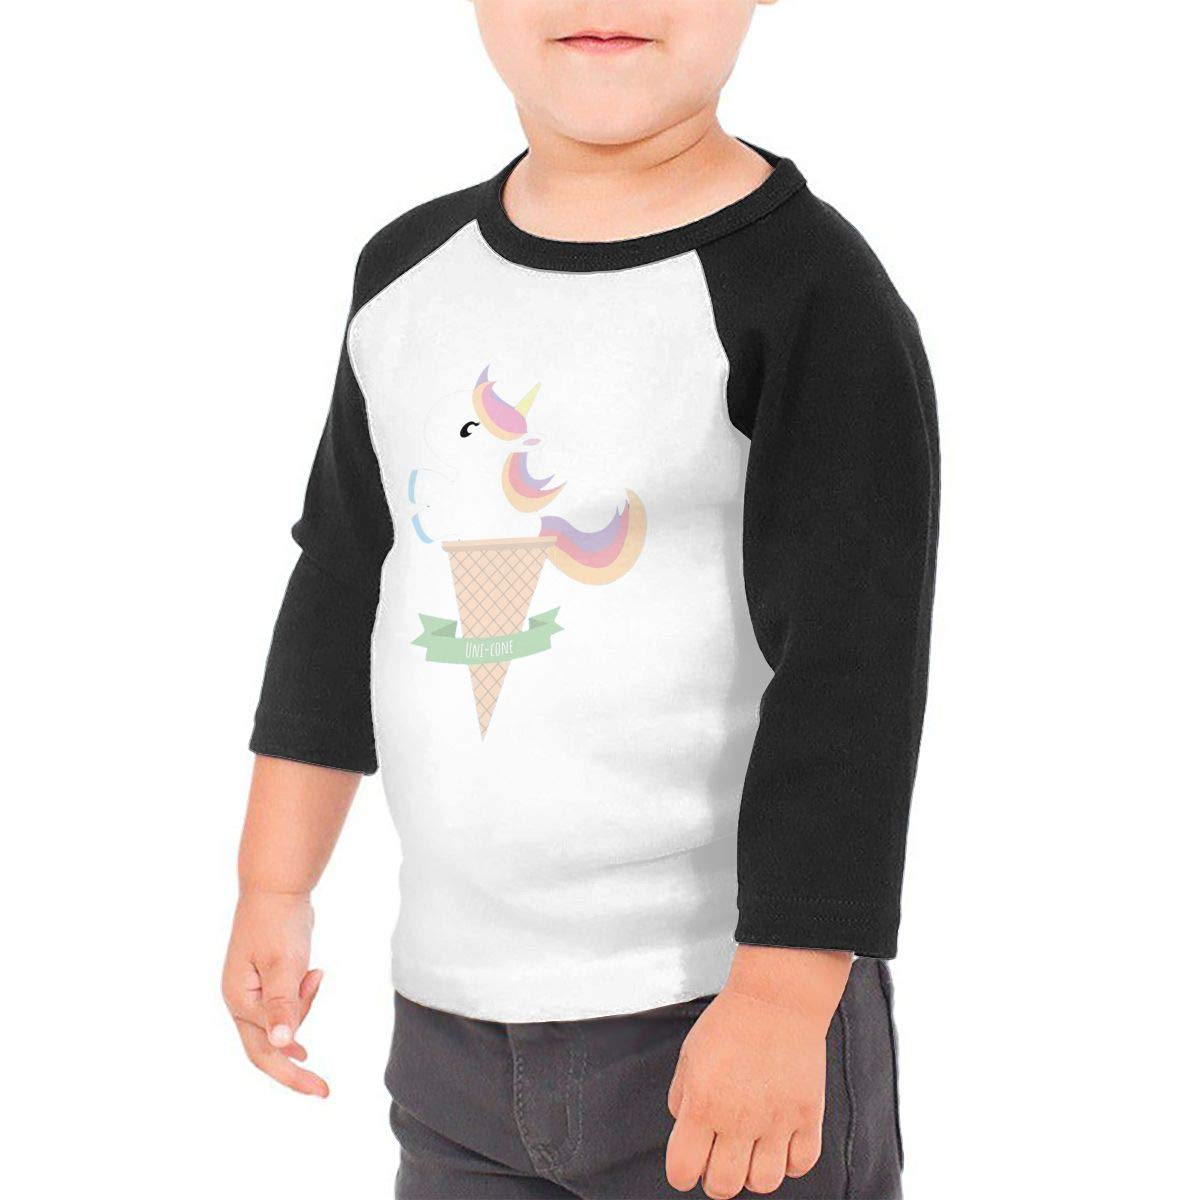 Uni is A Cone Unisex Toddler Baseball Jersey Contrast 3//4 Sleeves Tee